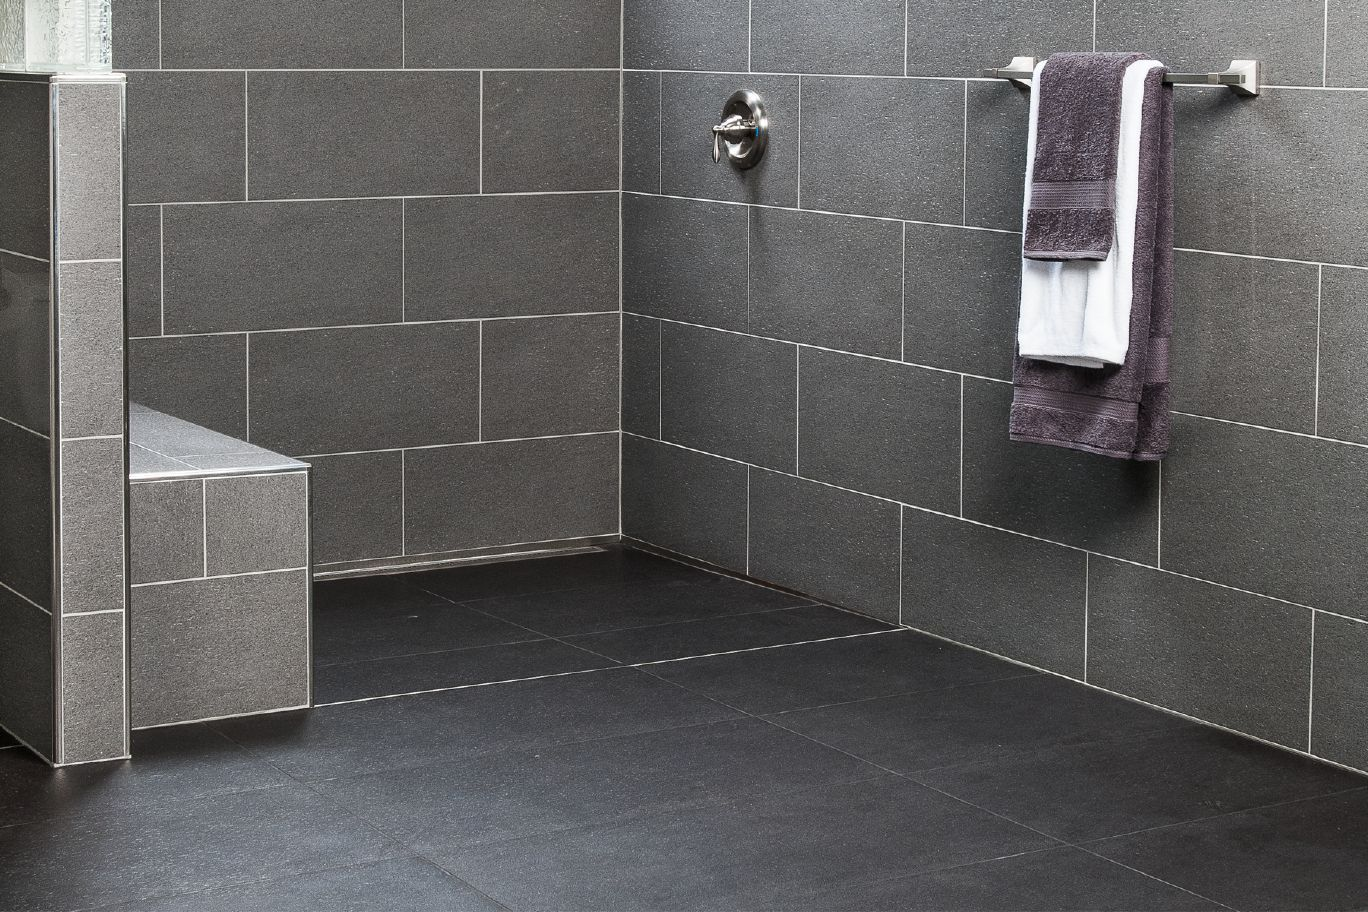 The Schluter® KERDI LINE Linear Drain Allows The Shower Base To Be Sloped  On A Single Plane, Increasing Design Options For Tile.